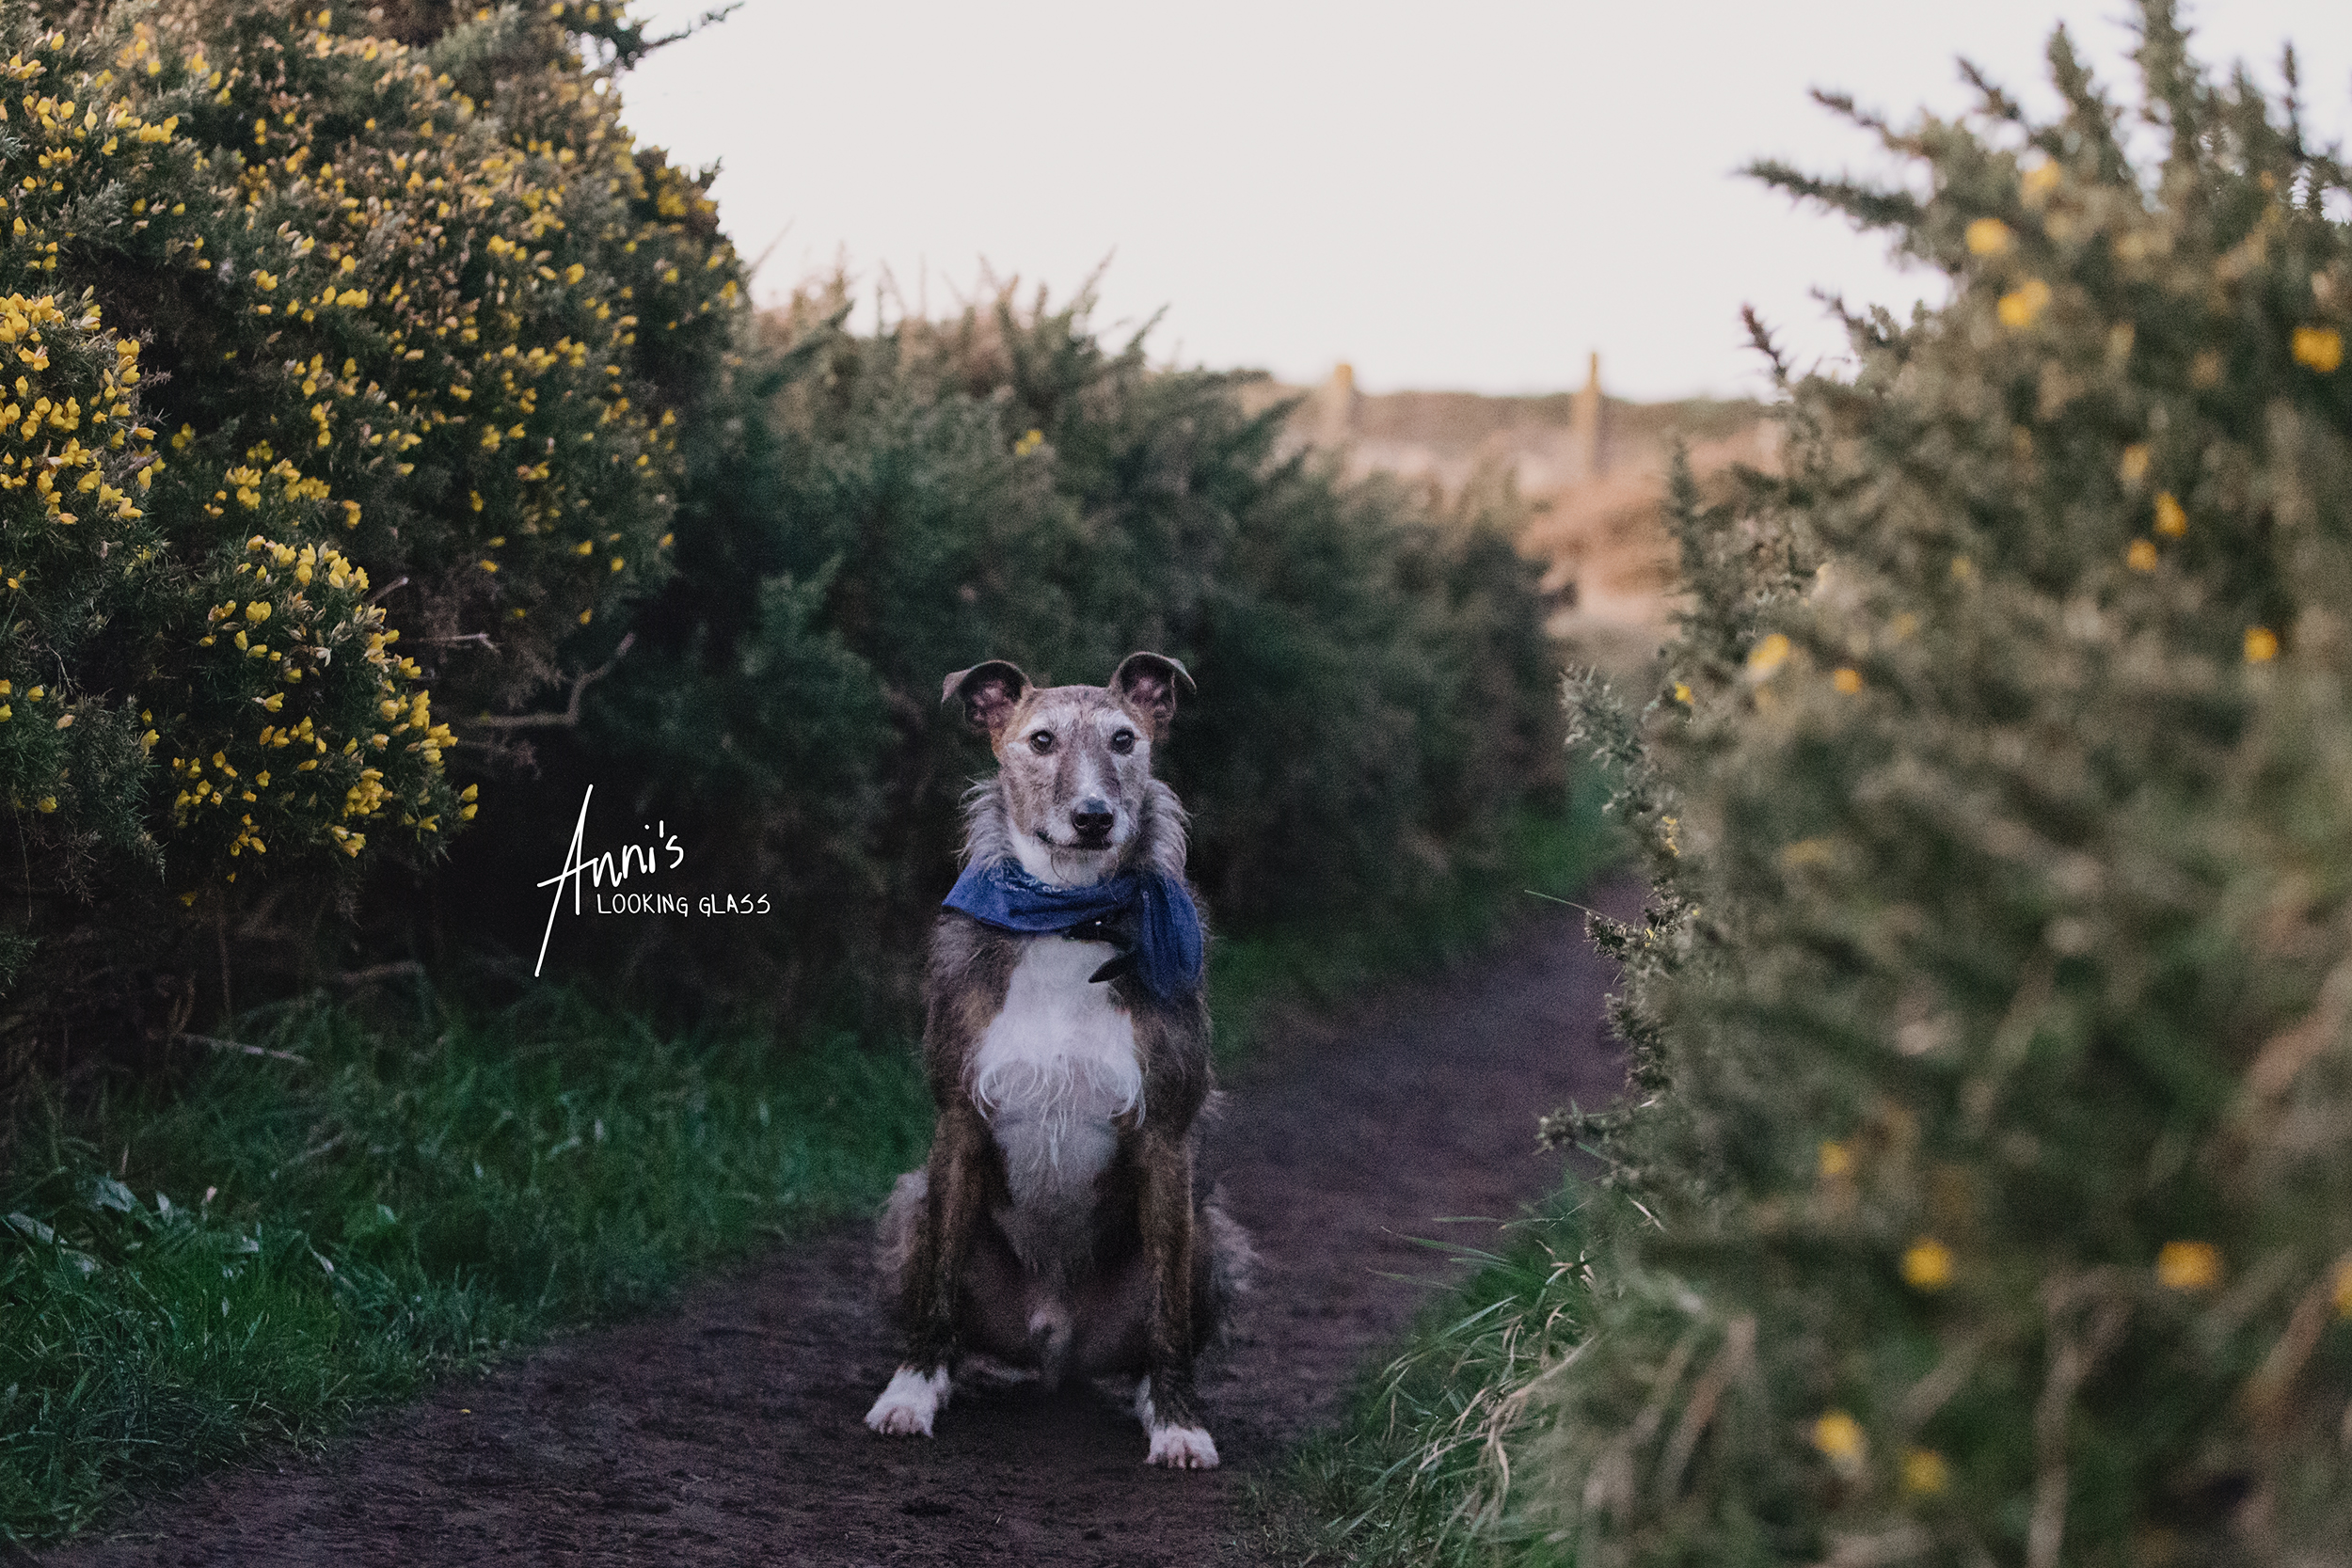 Dog Photographer Loughborough, Leicestershire: A greyhound wearing a blue bandana sitting among bushes with yellow blossoms in Co. Waterford, Ireland. 24th April 2018